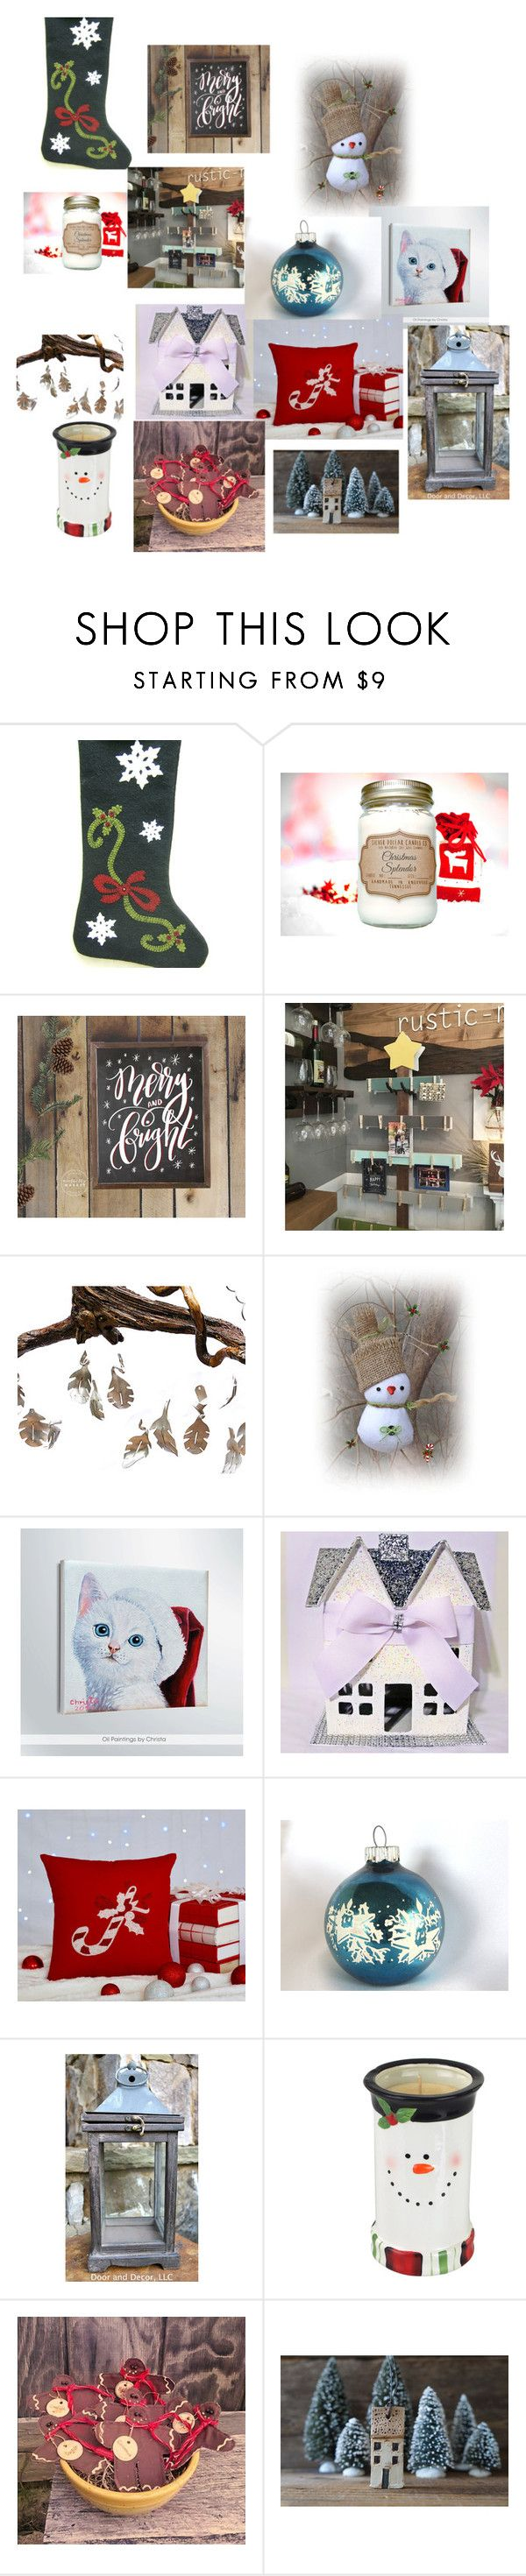 """Christmas ideas"" by onirojewelry on Polyvore featuring interior, interiors, interior design, home, home decor and interior decorating"